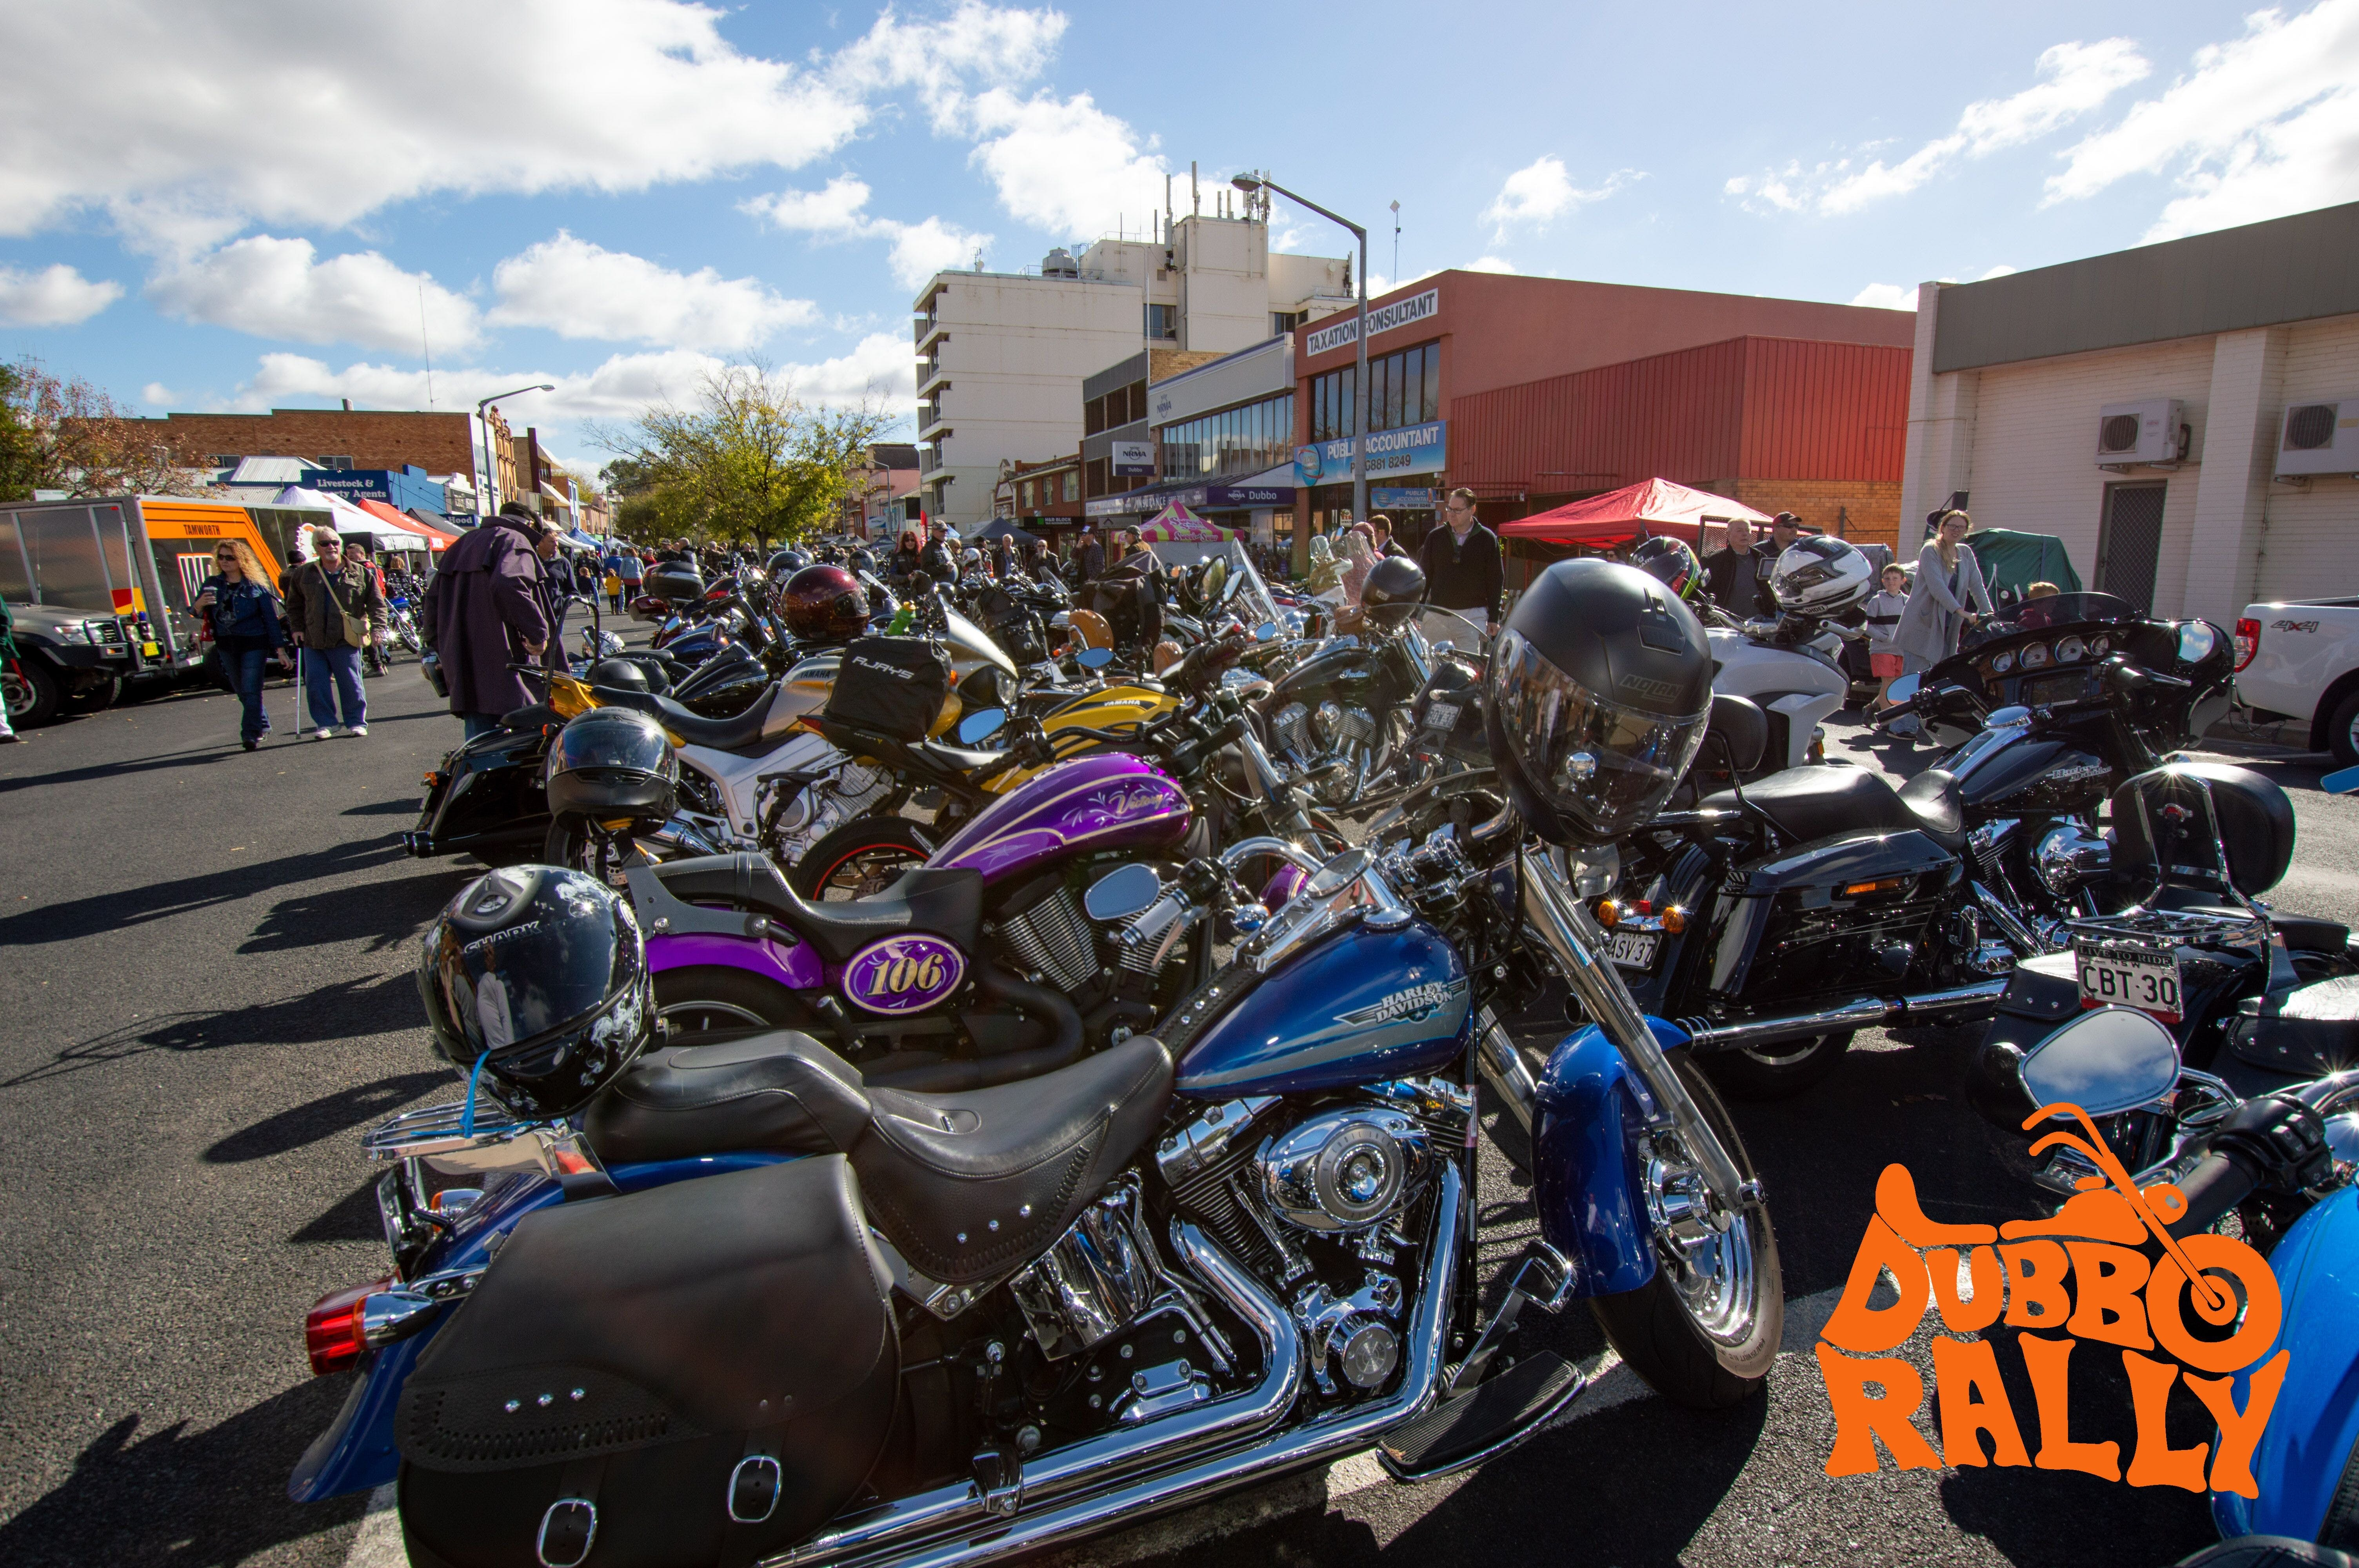 Dubbo Motor Bike Rally - Bundaberg Accommodation